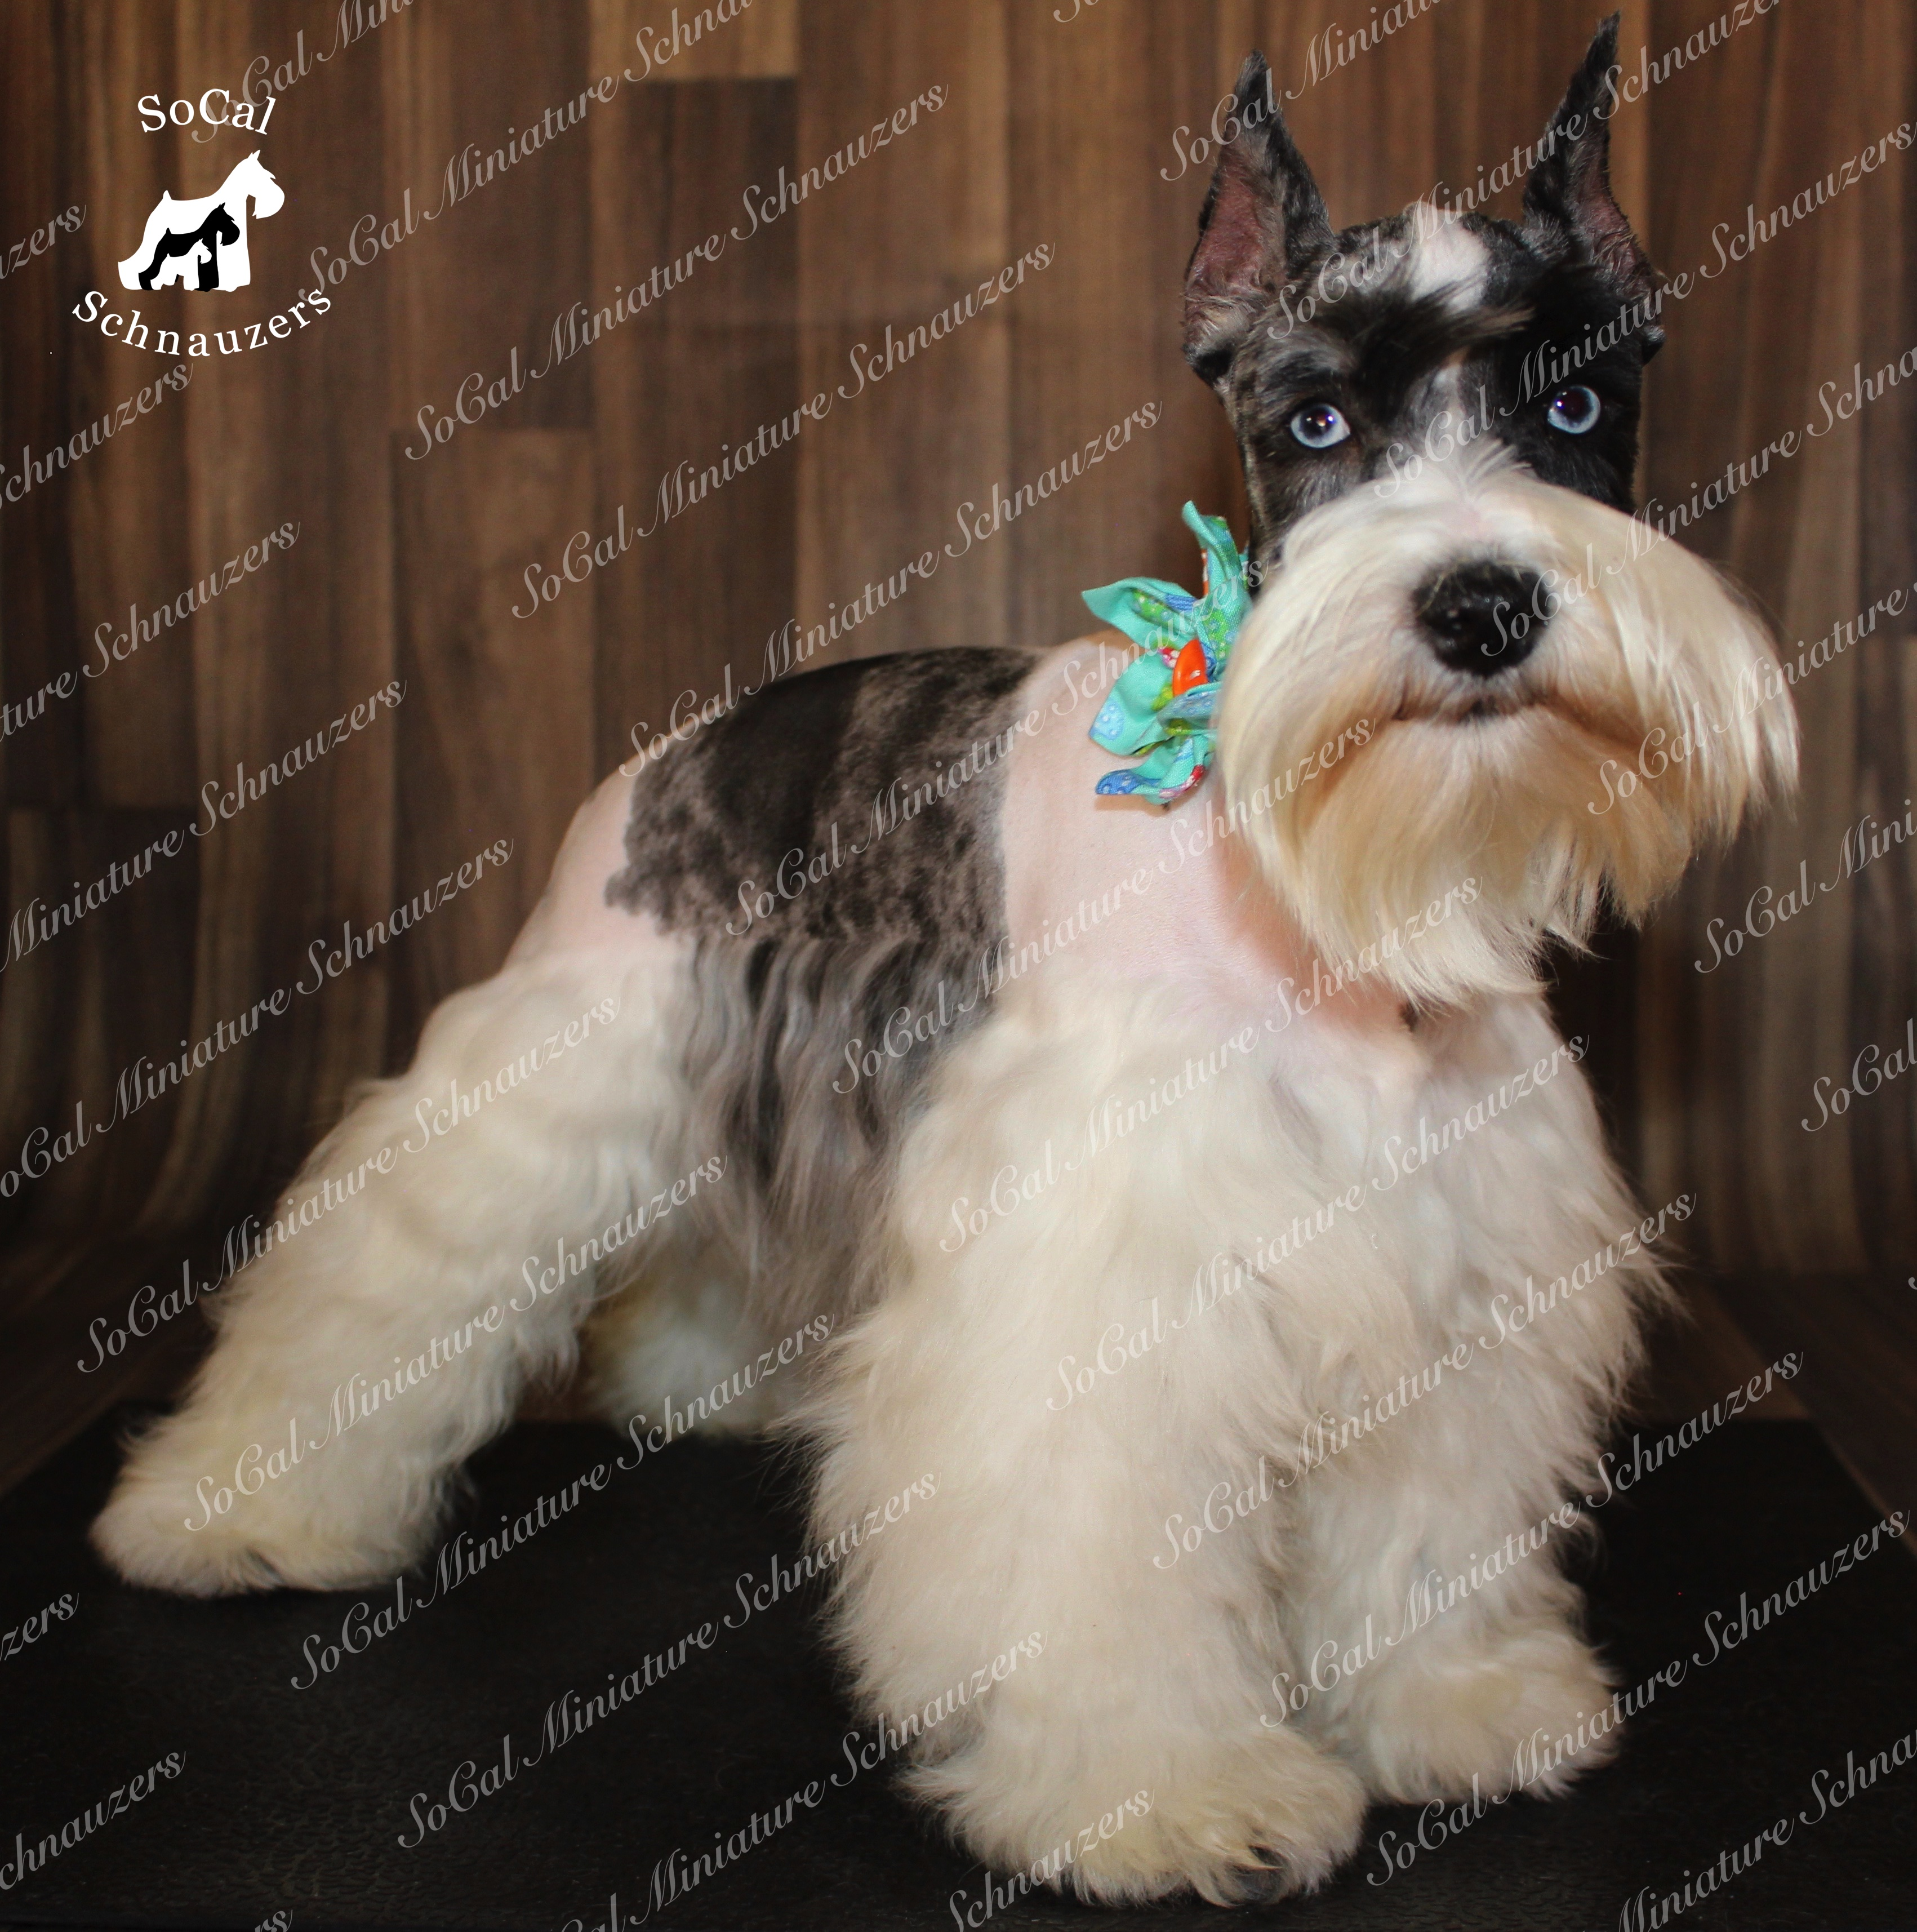 Fluffy schnauzer with white body and black middle